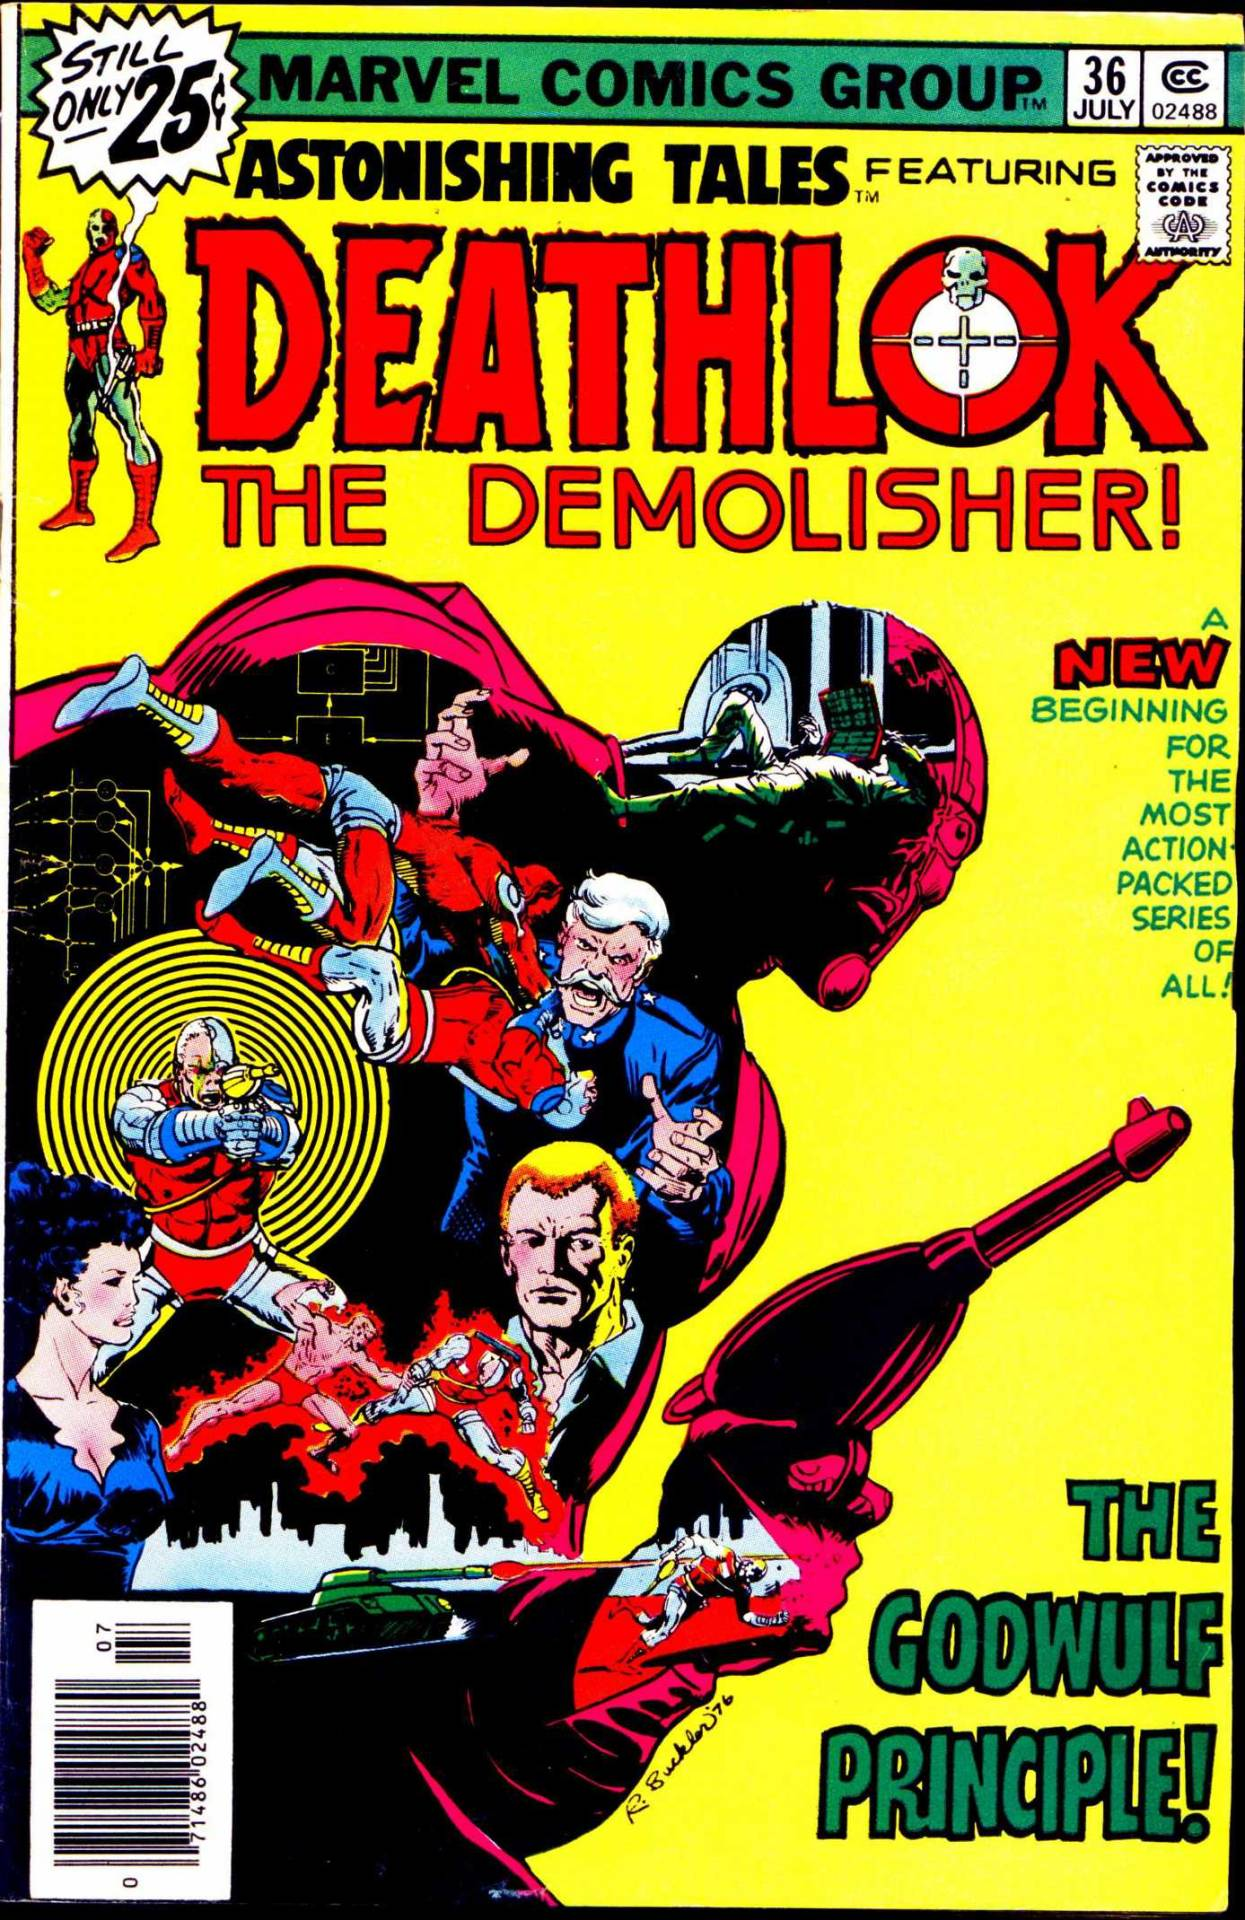 comicbookcovers:  Astonishing Tales #36, Featuring Deathlok The Demolisher, July 1976, cover by Rich Buckler